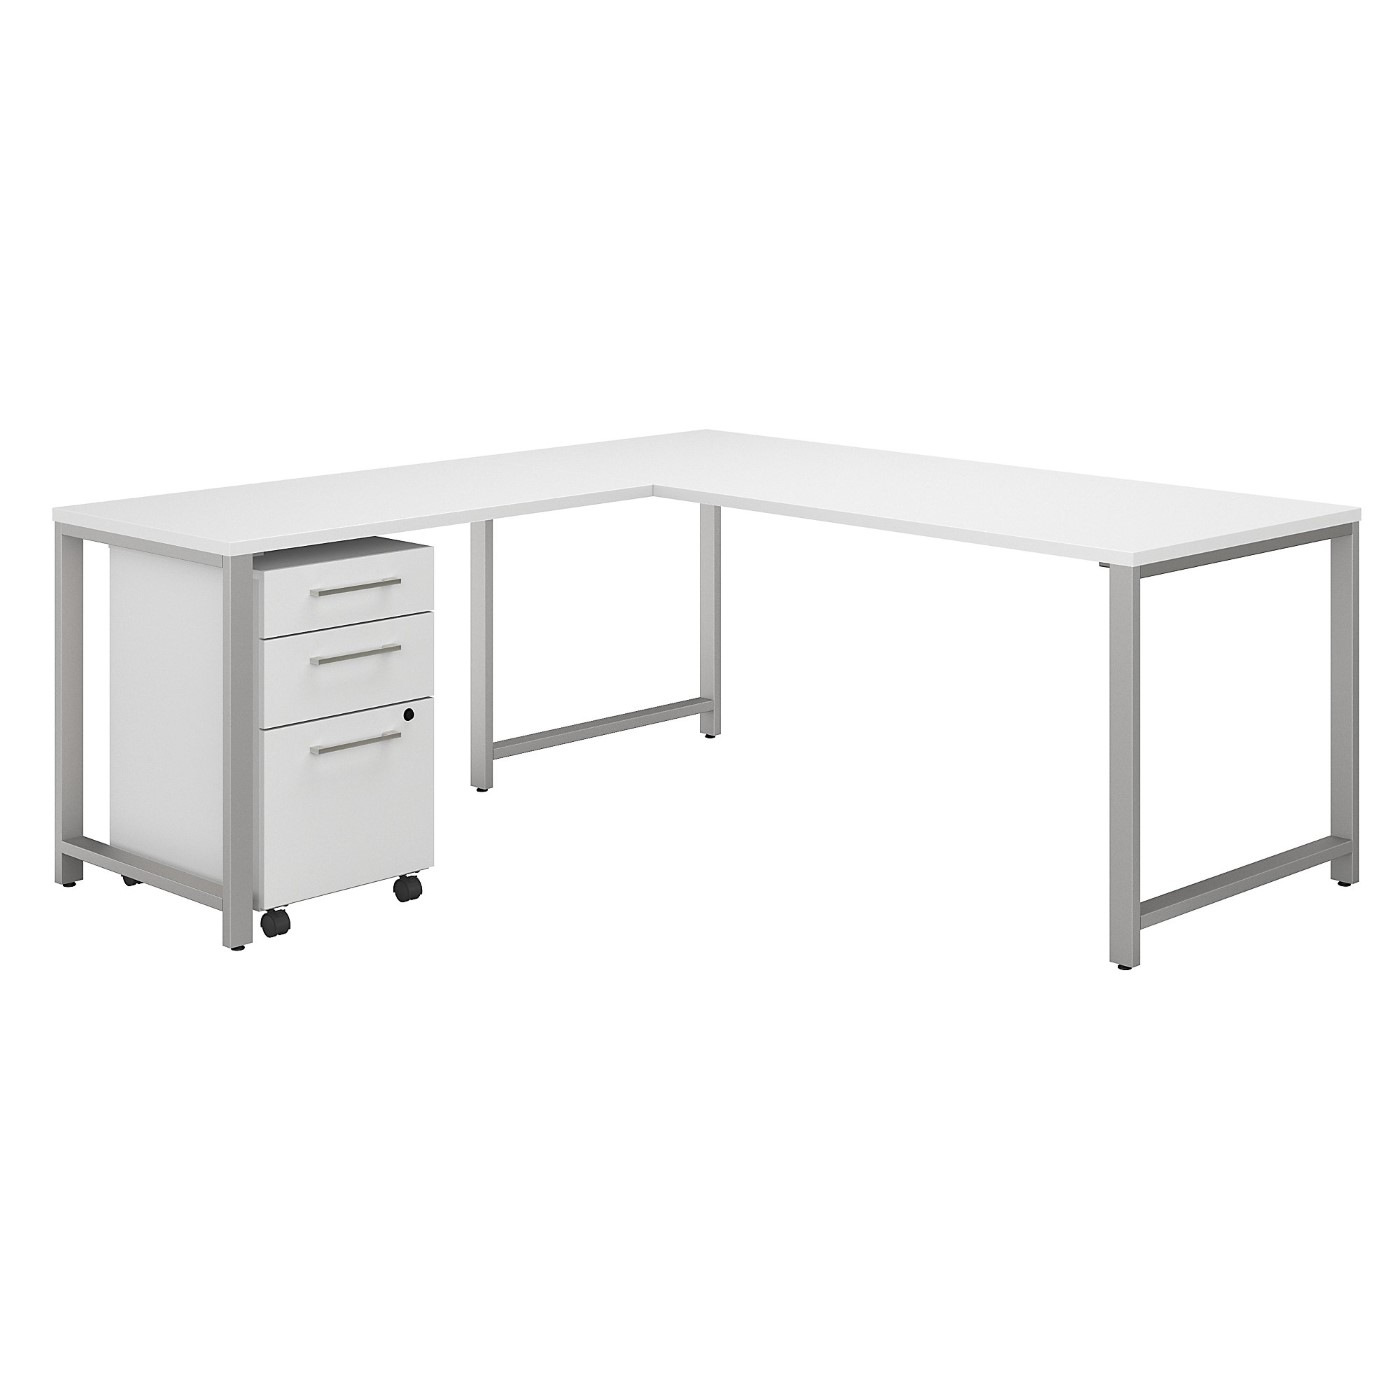 BUSH BUSINESS FURNITURE 400 SERIES 72W L SHAPED DESK WITH 48W RETURN AND 3 DRAWER MOBILE FILE CABINET. FREE SHIPPINGTAA COMPLIANTAMERICAN MADE 30H x 72L x 72W.  SALE DEDUCT 10% MORE ENTER '10percent' IN COUPON CODE BOX WHILE CHECKING OUT.